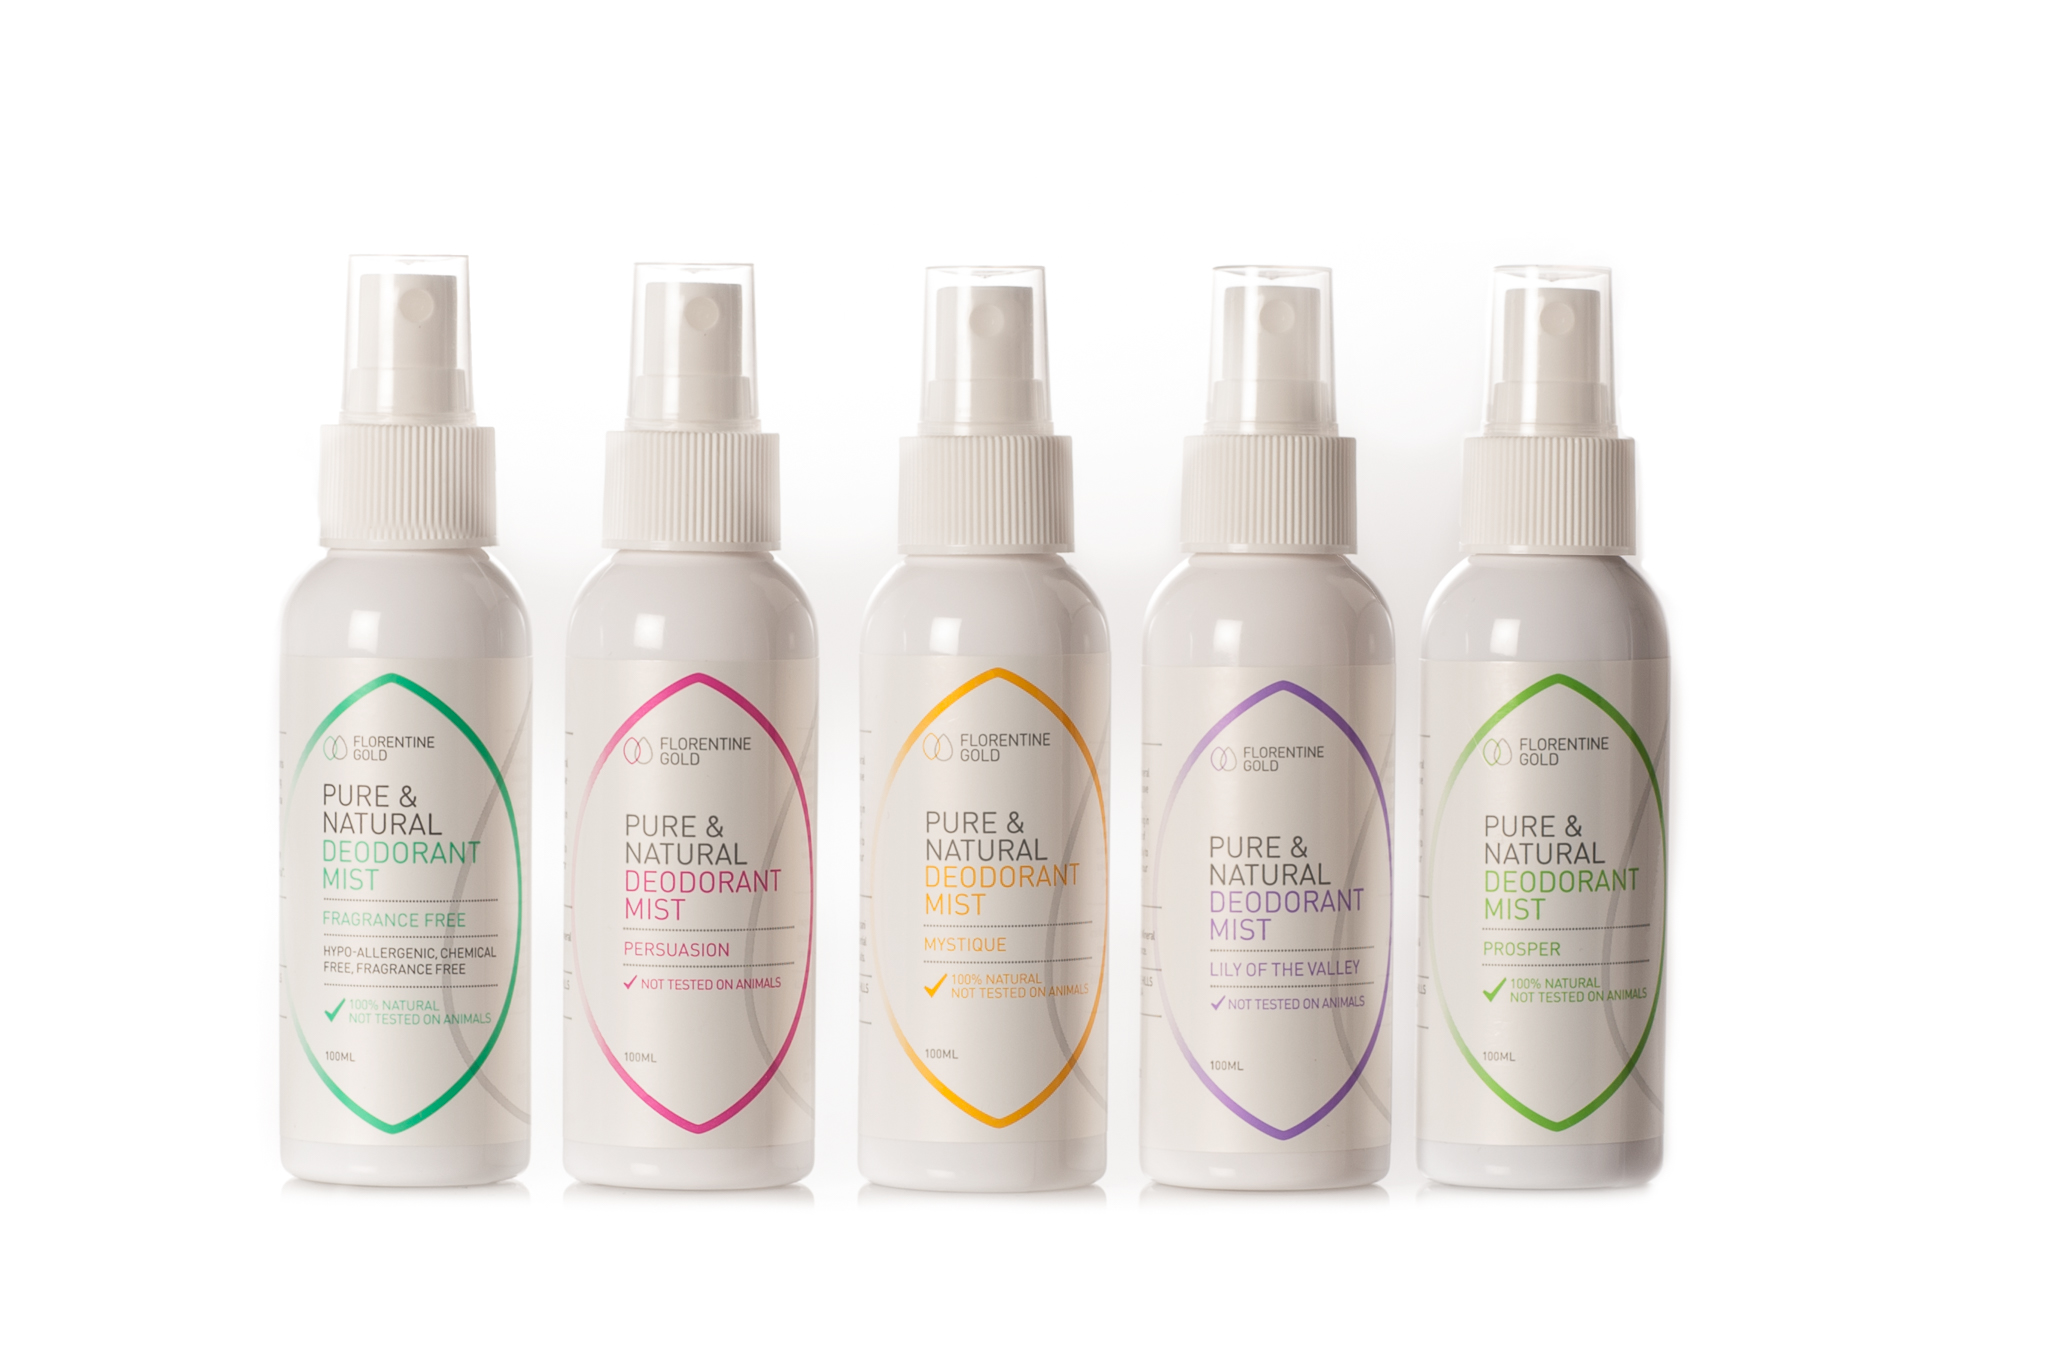 PURE & natural deodorants by florentine gold